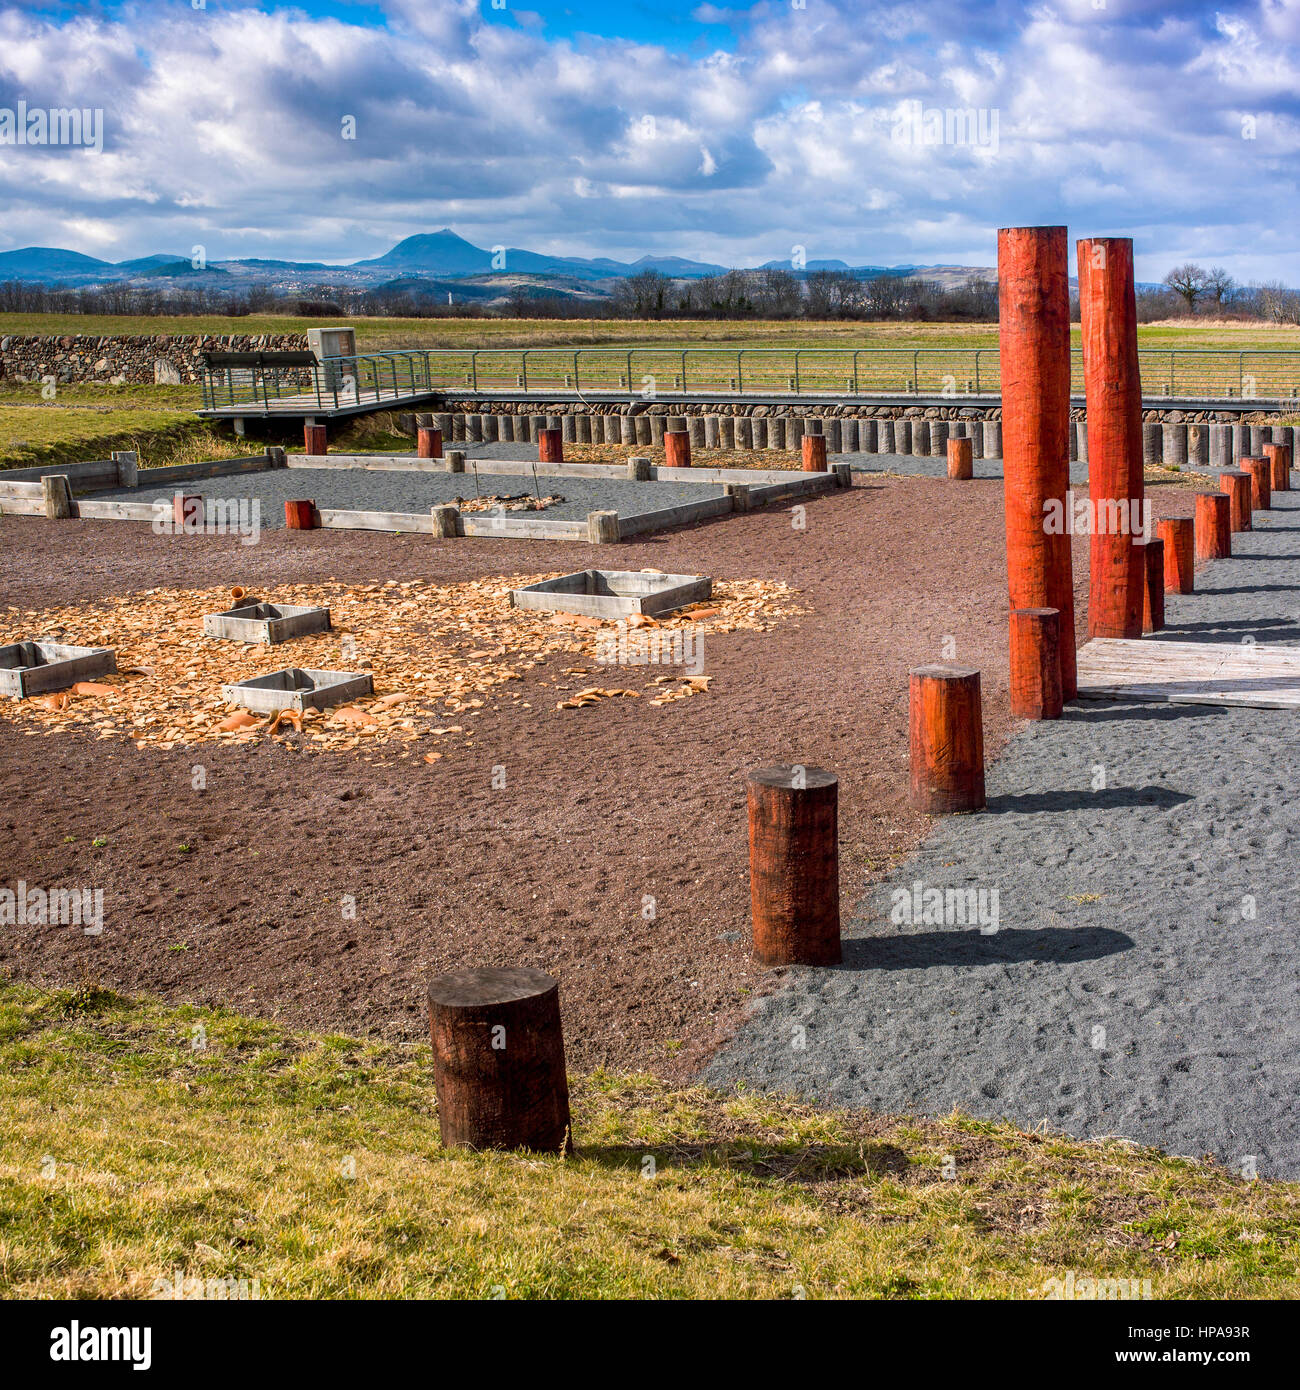 Gaul oppidum of Corent, archeological site, Puy de Dome, France, Europe - Stock Image